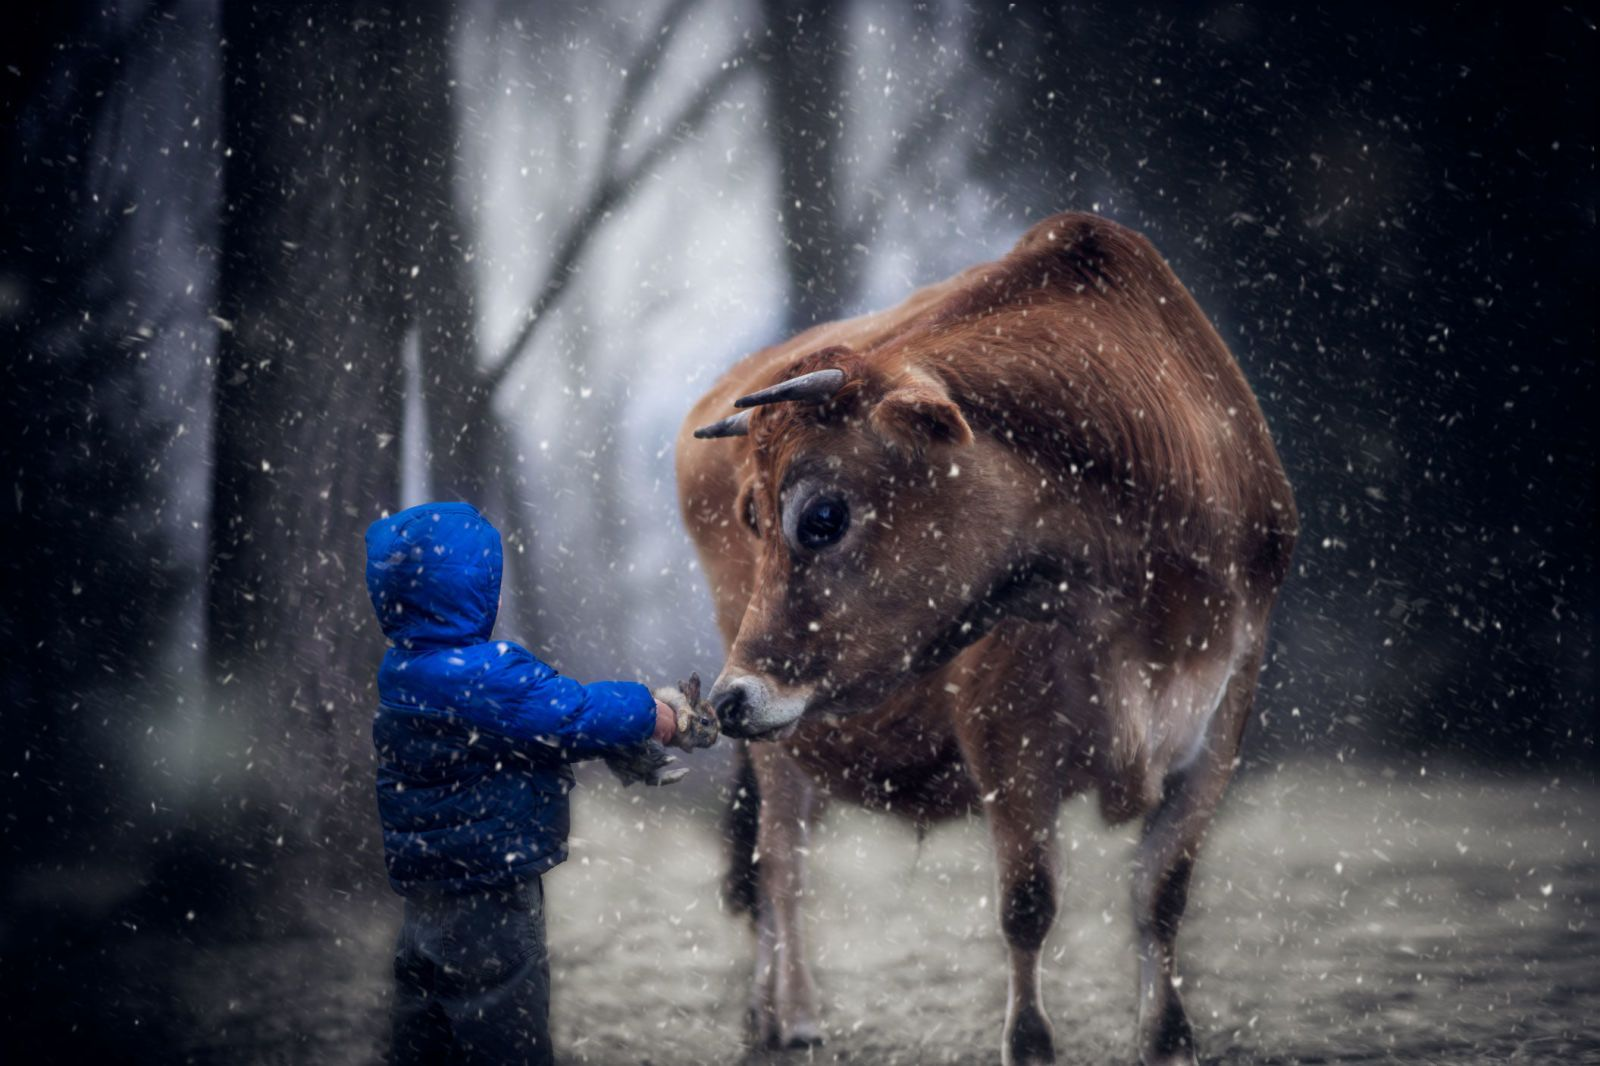 This Dad's Stunning Amateur Photography Captures the Beauty of Growing Up on a Farm  - CountryLiving.com